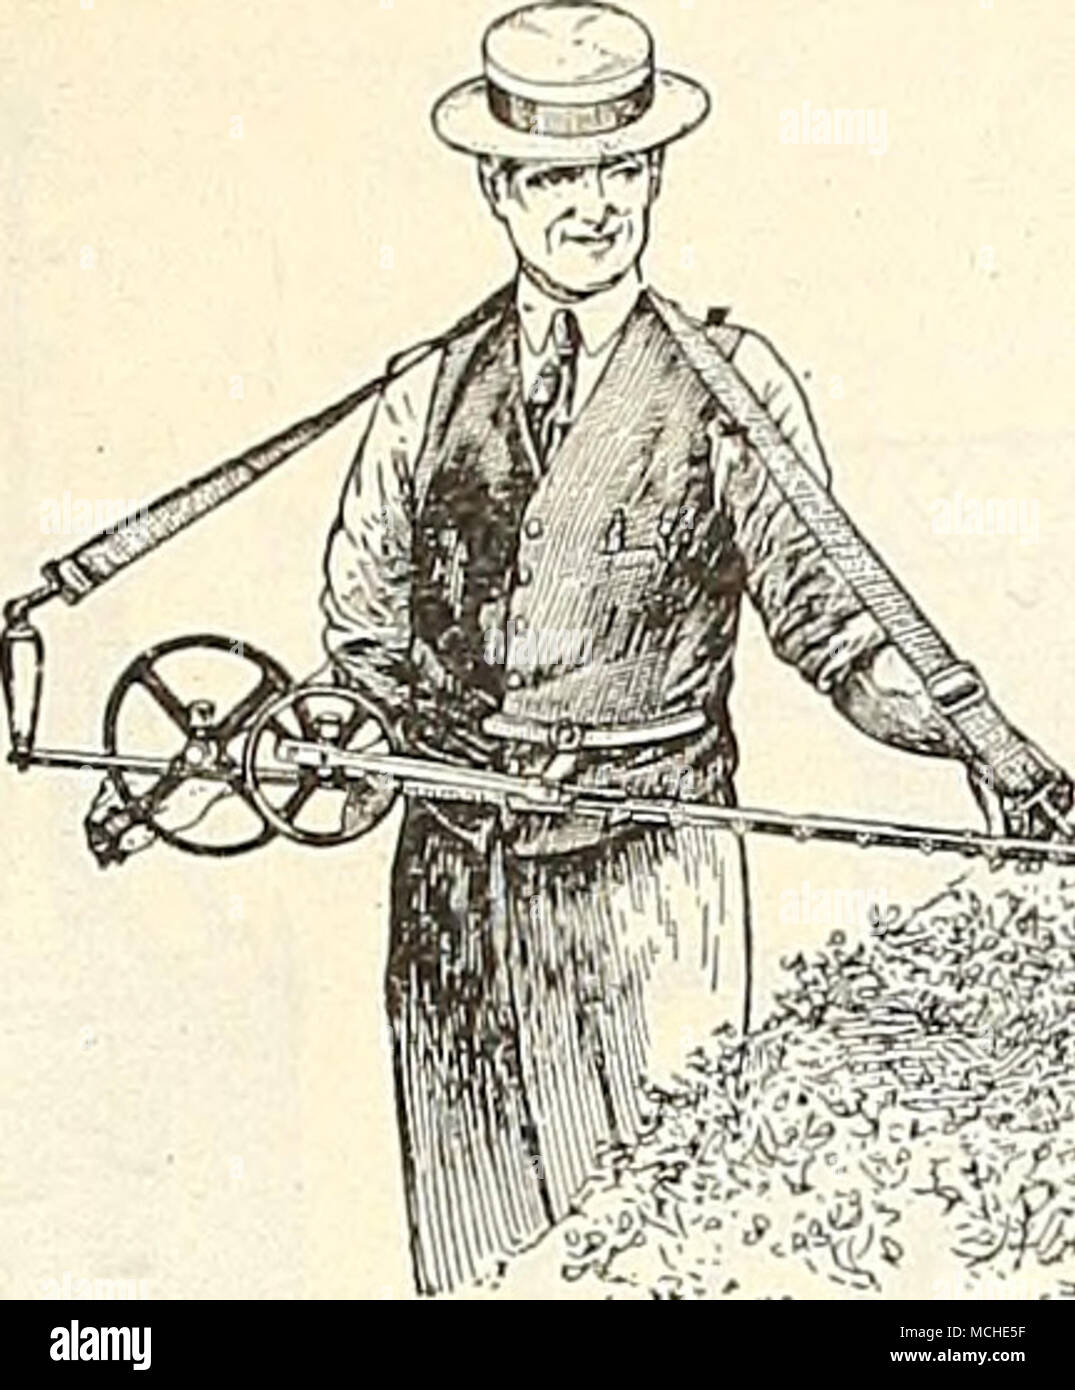 """. , ^f.^ Little Wonder Hedge Trimmer Hedge Trimmer, """"Little Wonder."""" An excellent machine for cutting new growth of hedges, doing the work many times faster than the ordinary hedge shears. With 30-in. cutting bar, $25.00; 40 in., $27.50; 60 in $35 00 ' Lawn clipper attachment for 30 in. or 40 in. machine... 18 00 Hedge Pruner and Hedge Trimmer, Sim- plicity. Cuts both opening and closing. Trim- mer, $4.00; trim- mer and pruner, $6.00. - Stock Image"""